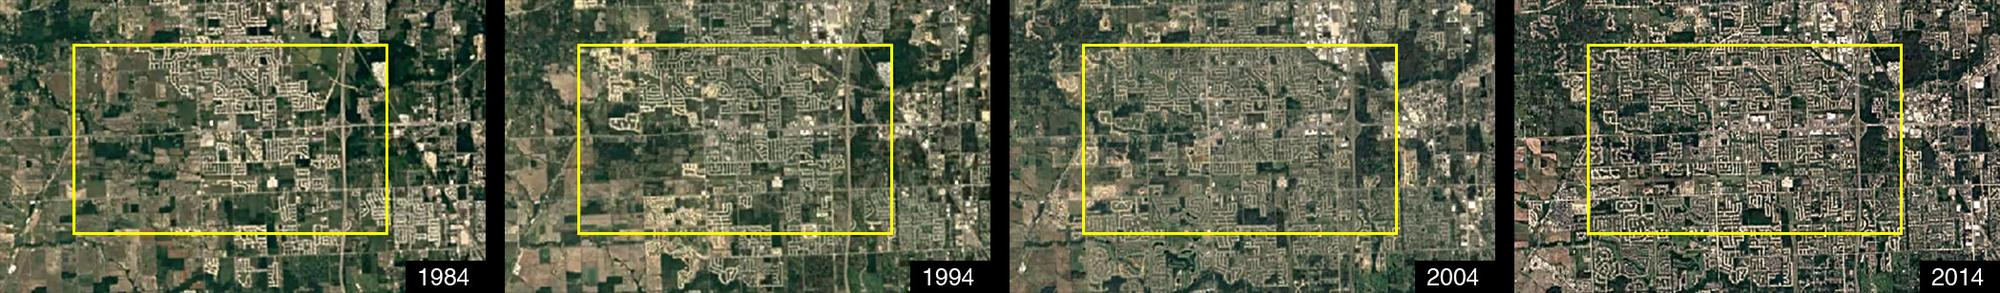 Canton's growth over 30 years as seen through Google Earth Timelapse images. Google Earth